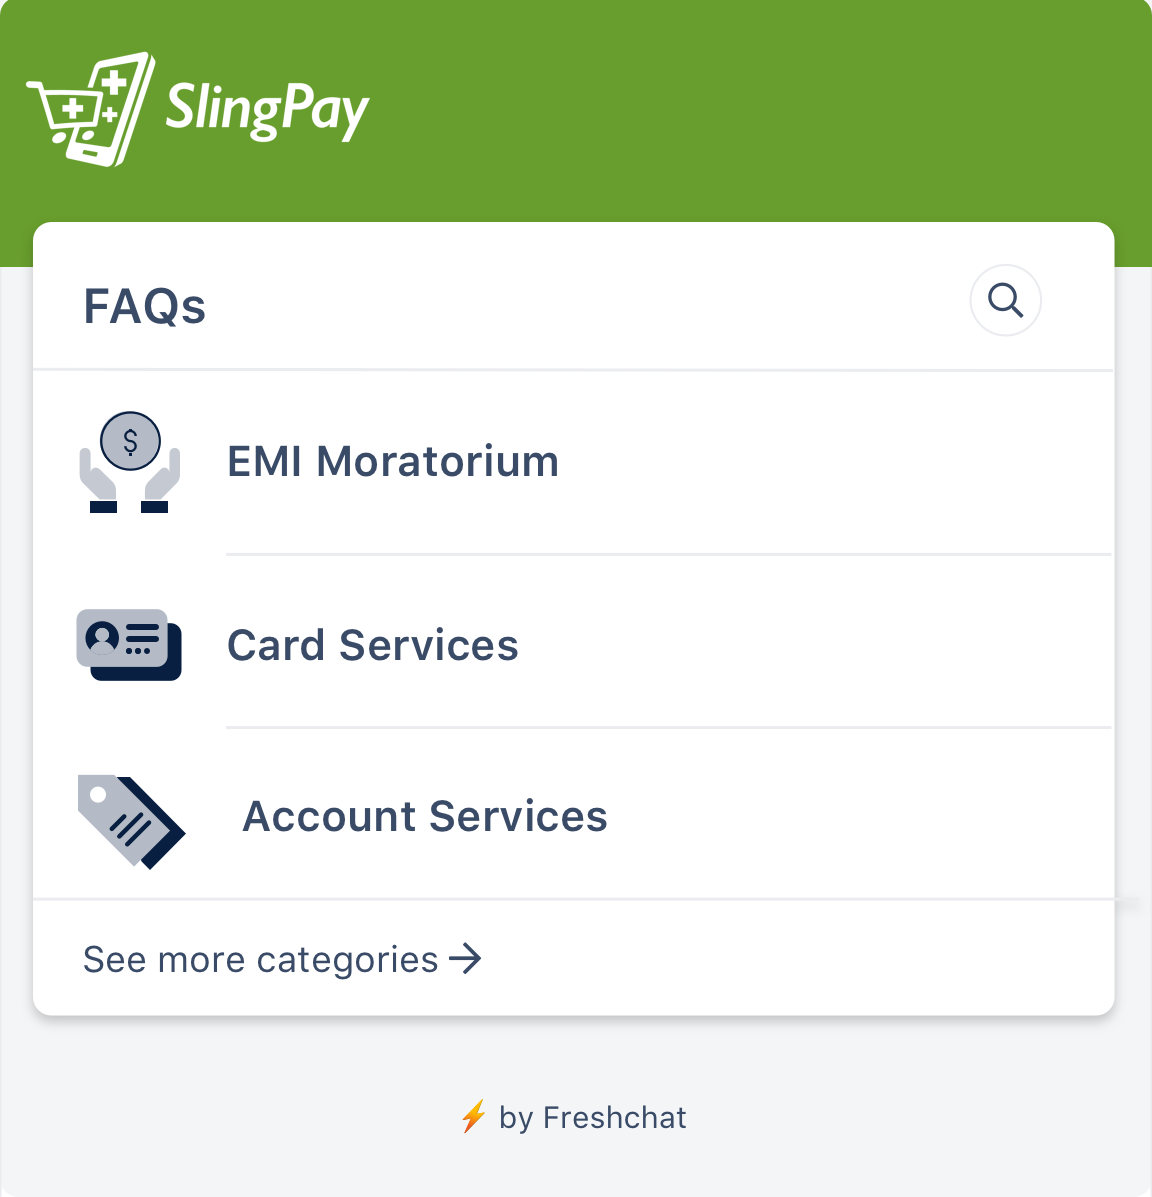 SlingPay FAQs powered by Freshchat